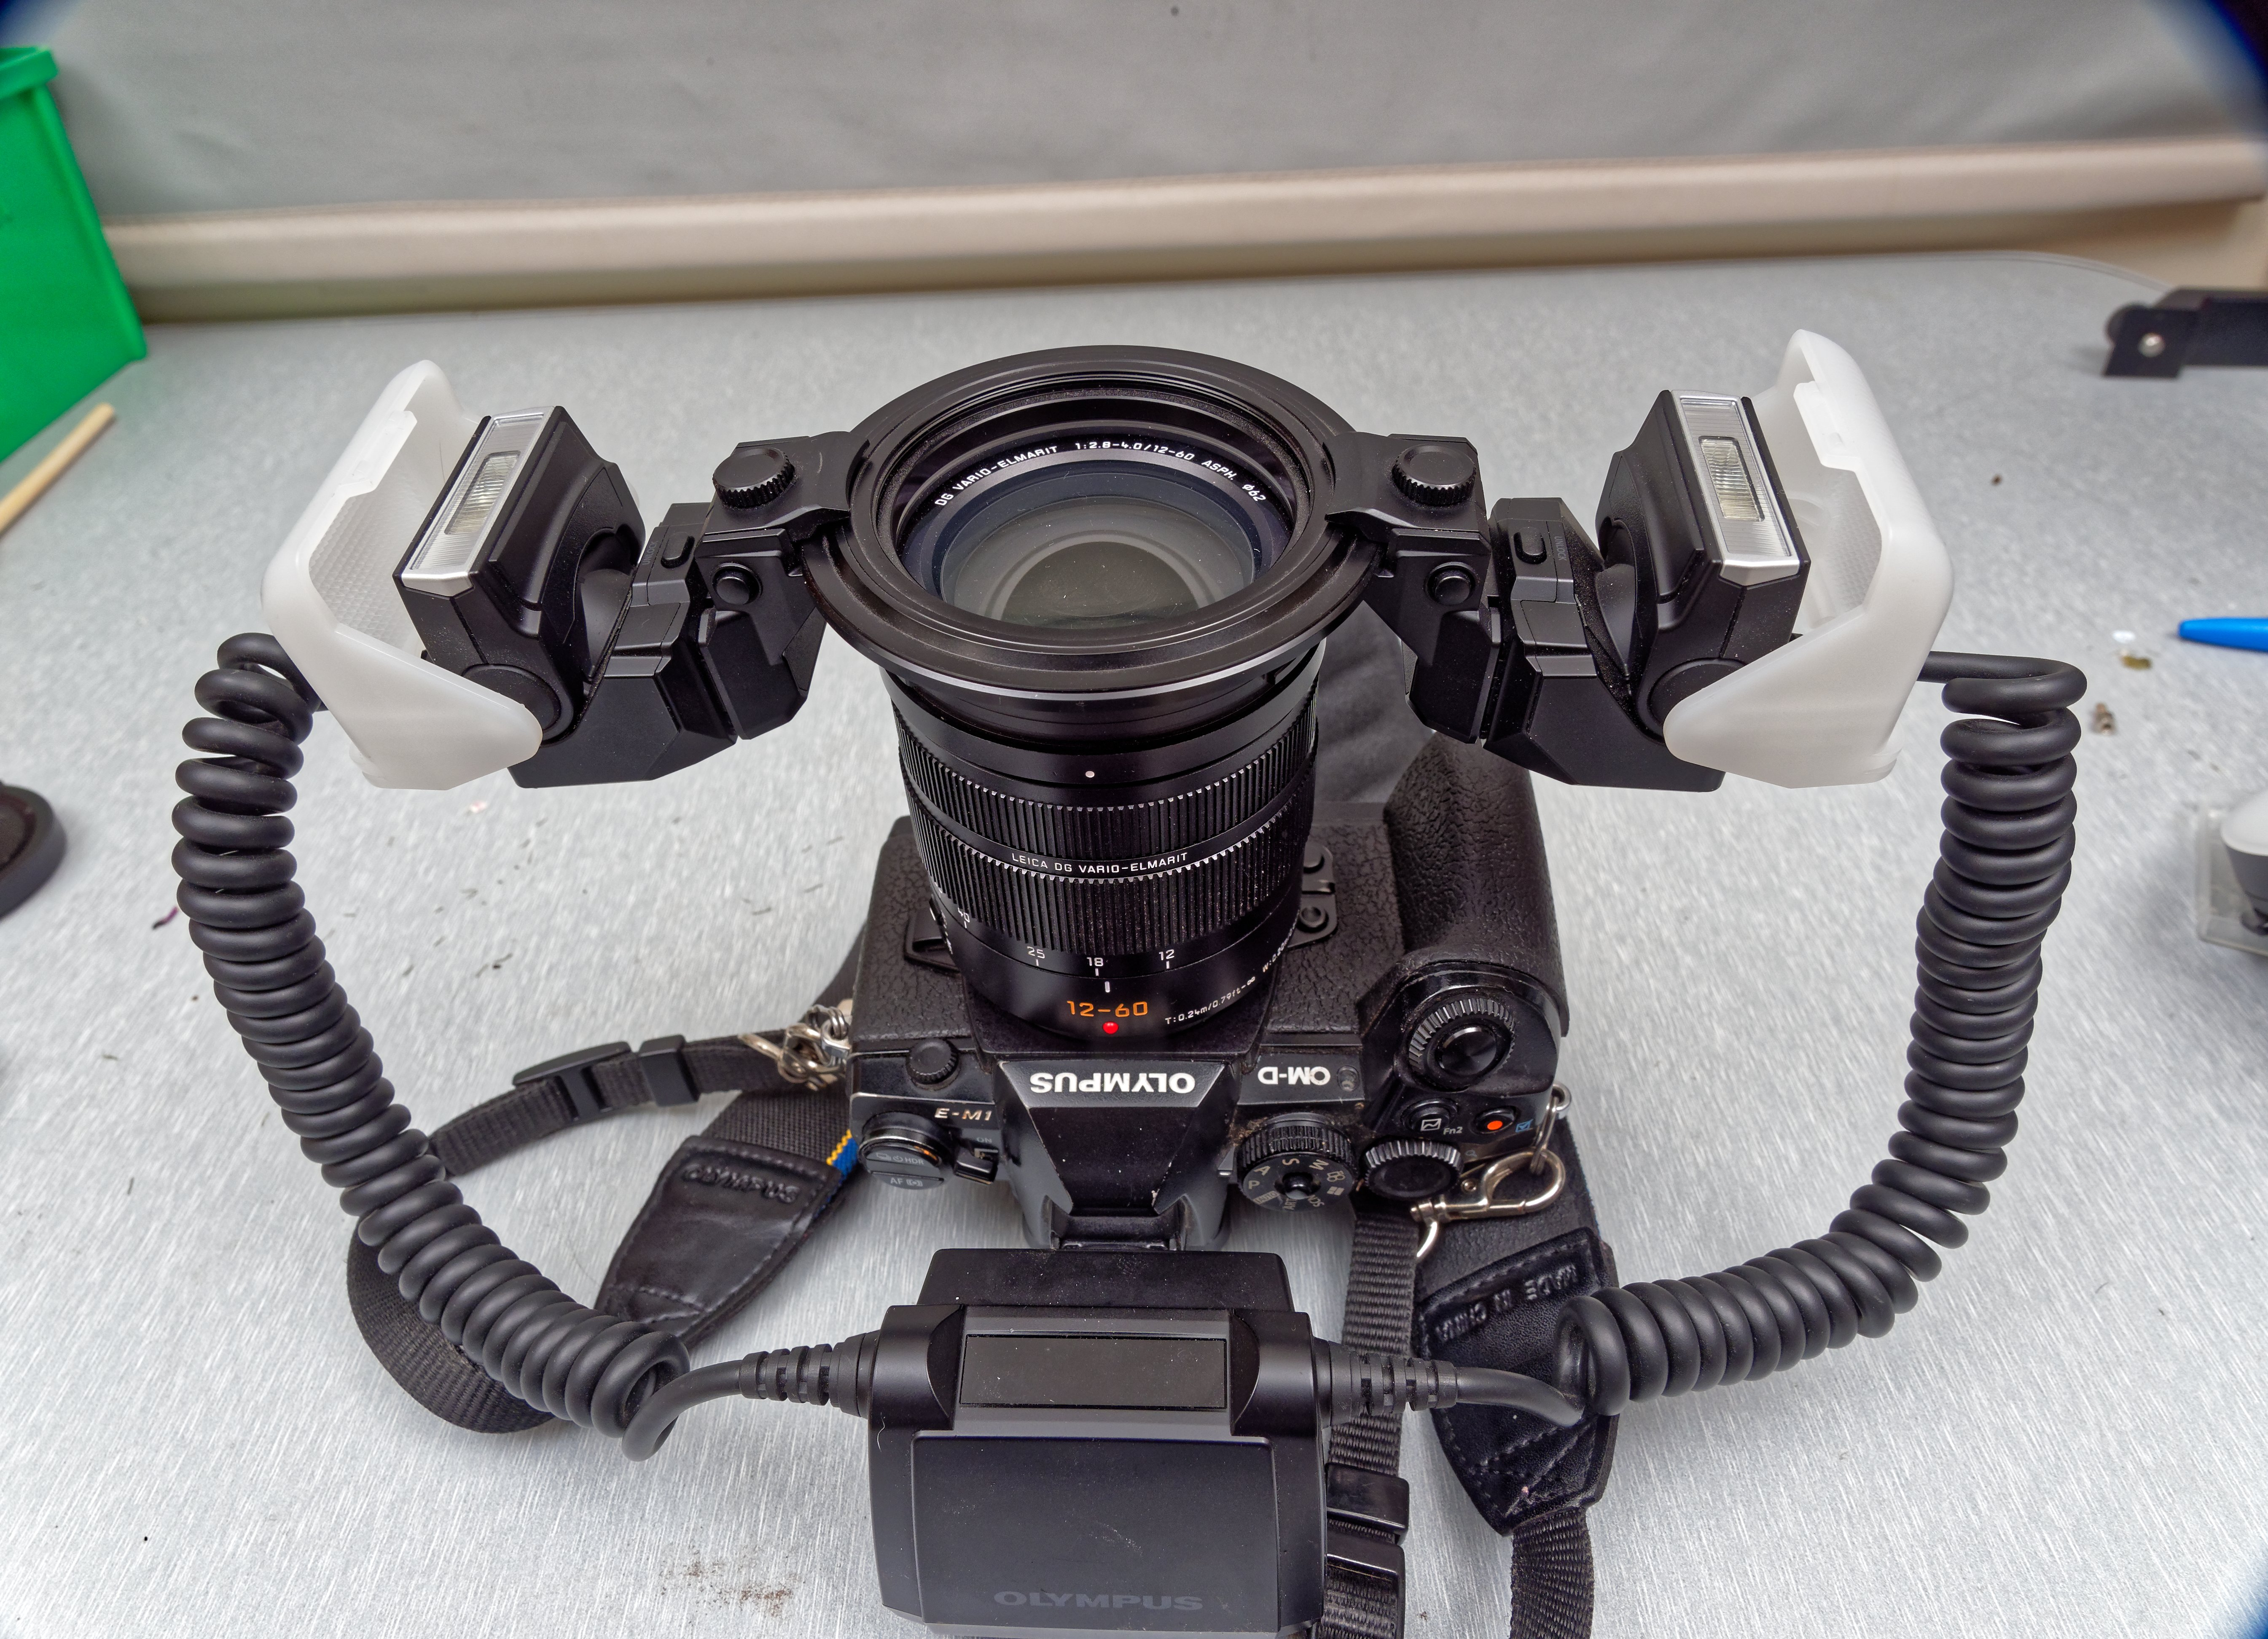 This should be Olympus-STF-8-1.jpeg.  Is it missing?